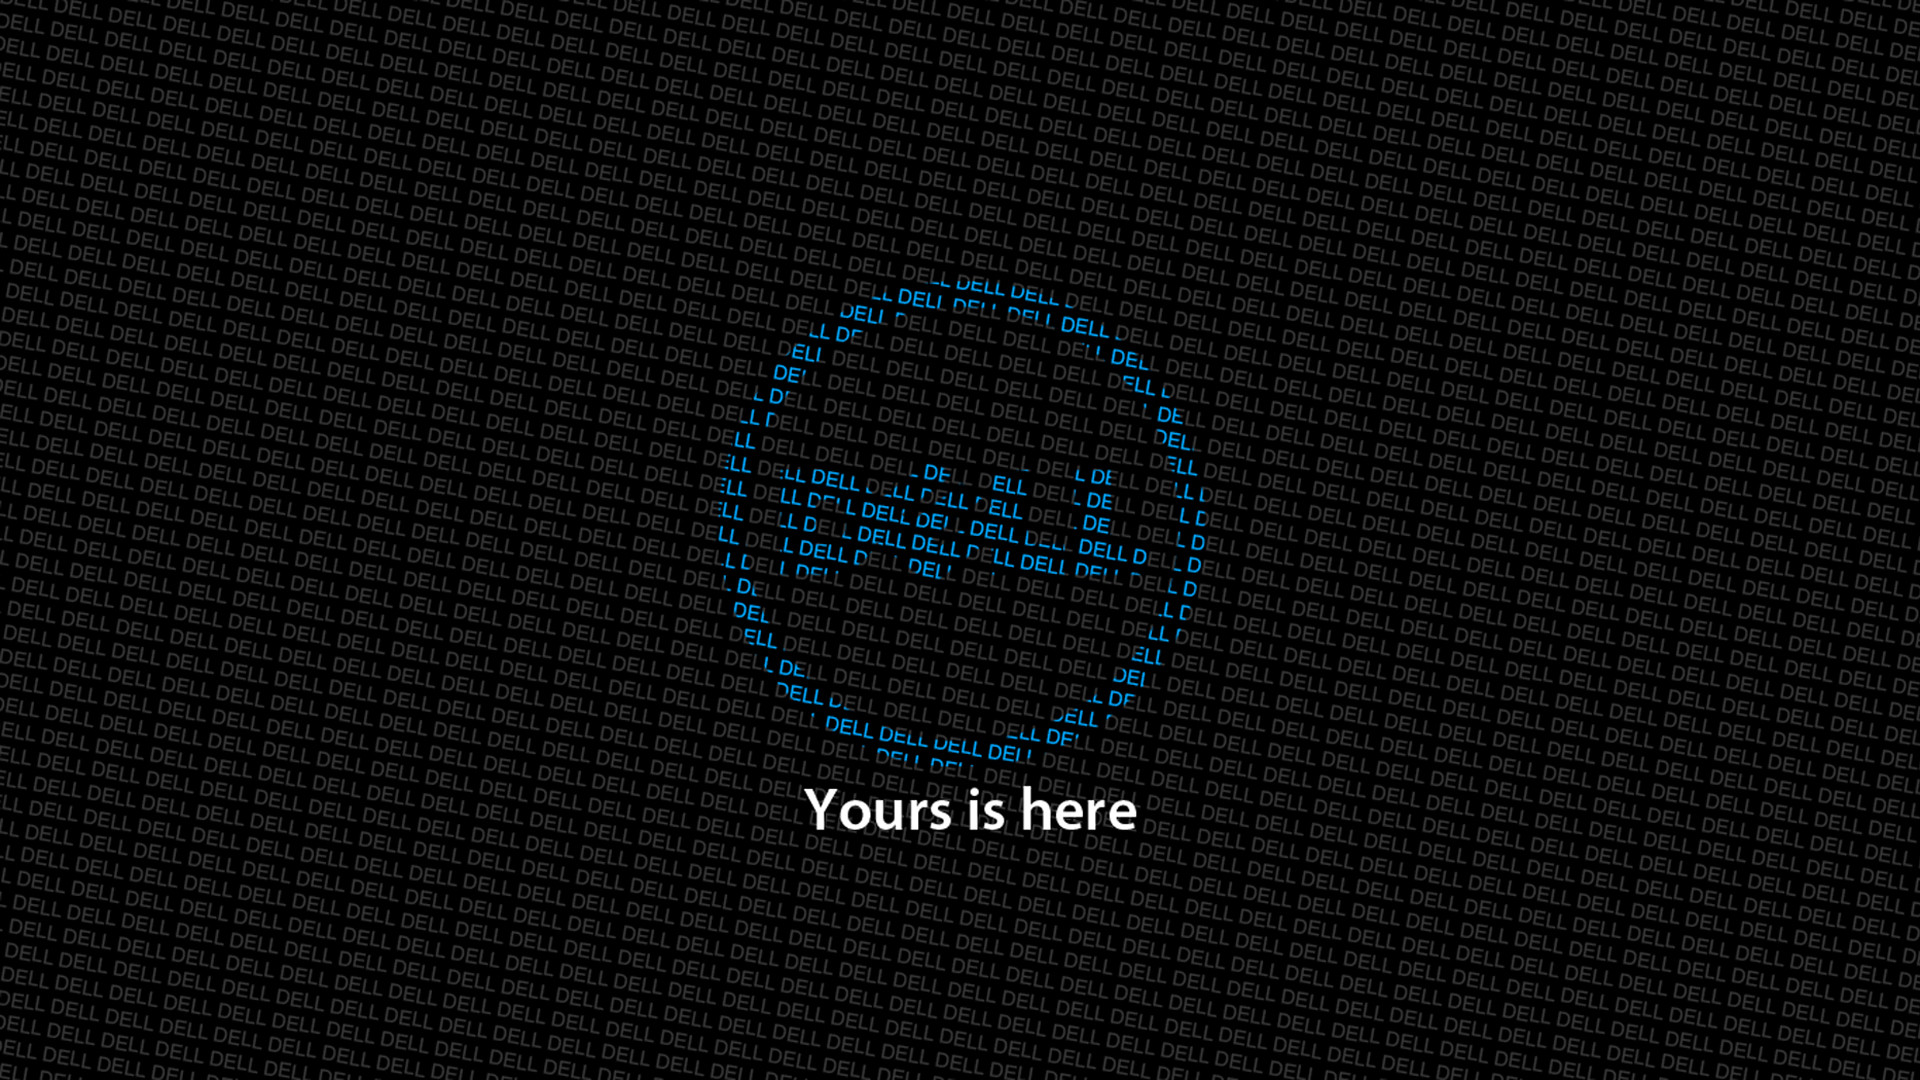 1920x1080 Dell Wallpaper Images Windows Wallpapers Backgrounds